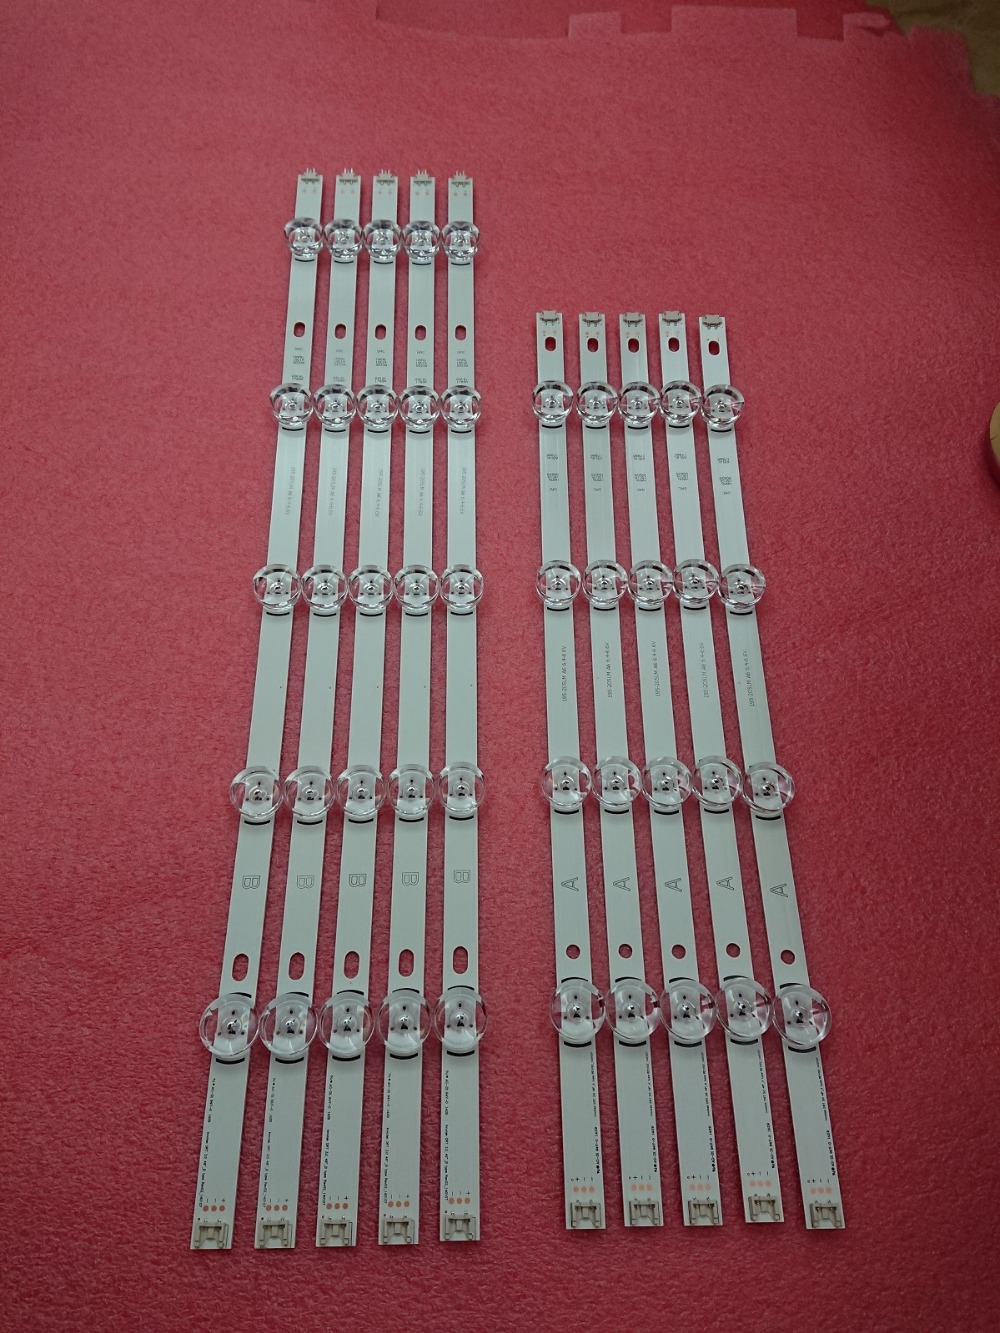 New 10 PCS/set LED Strip Replacement For LG 49LB580V 49LB5500 Innotek DRT 3.0 49 A B 6916L-1788A 6916L-1789A 6916L-1944A 1945A